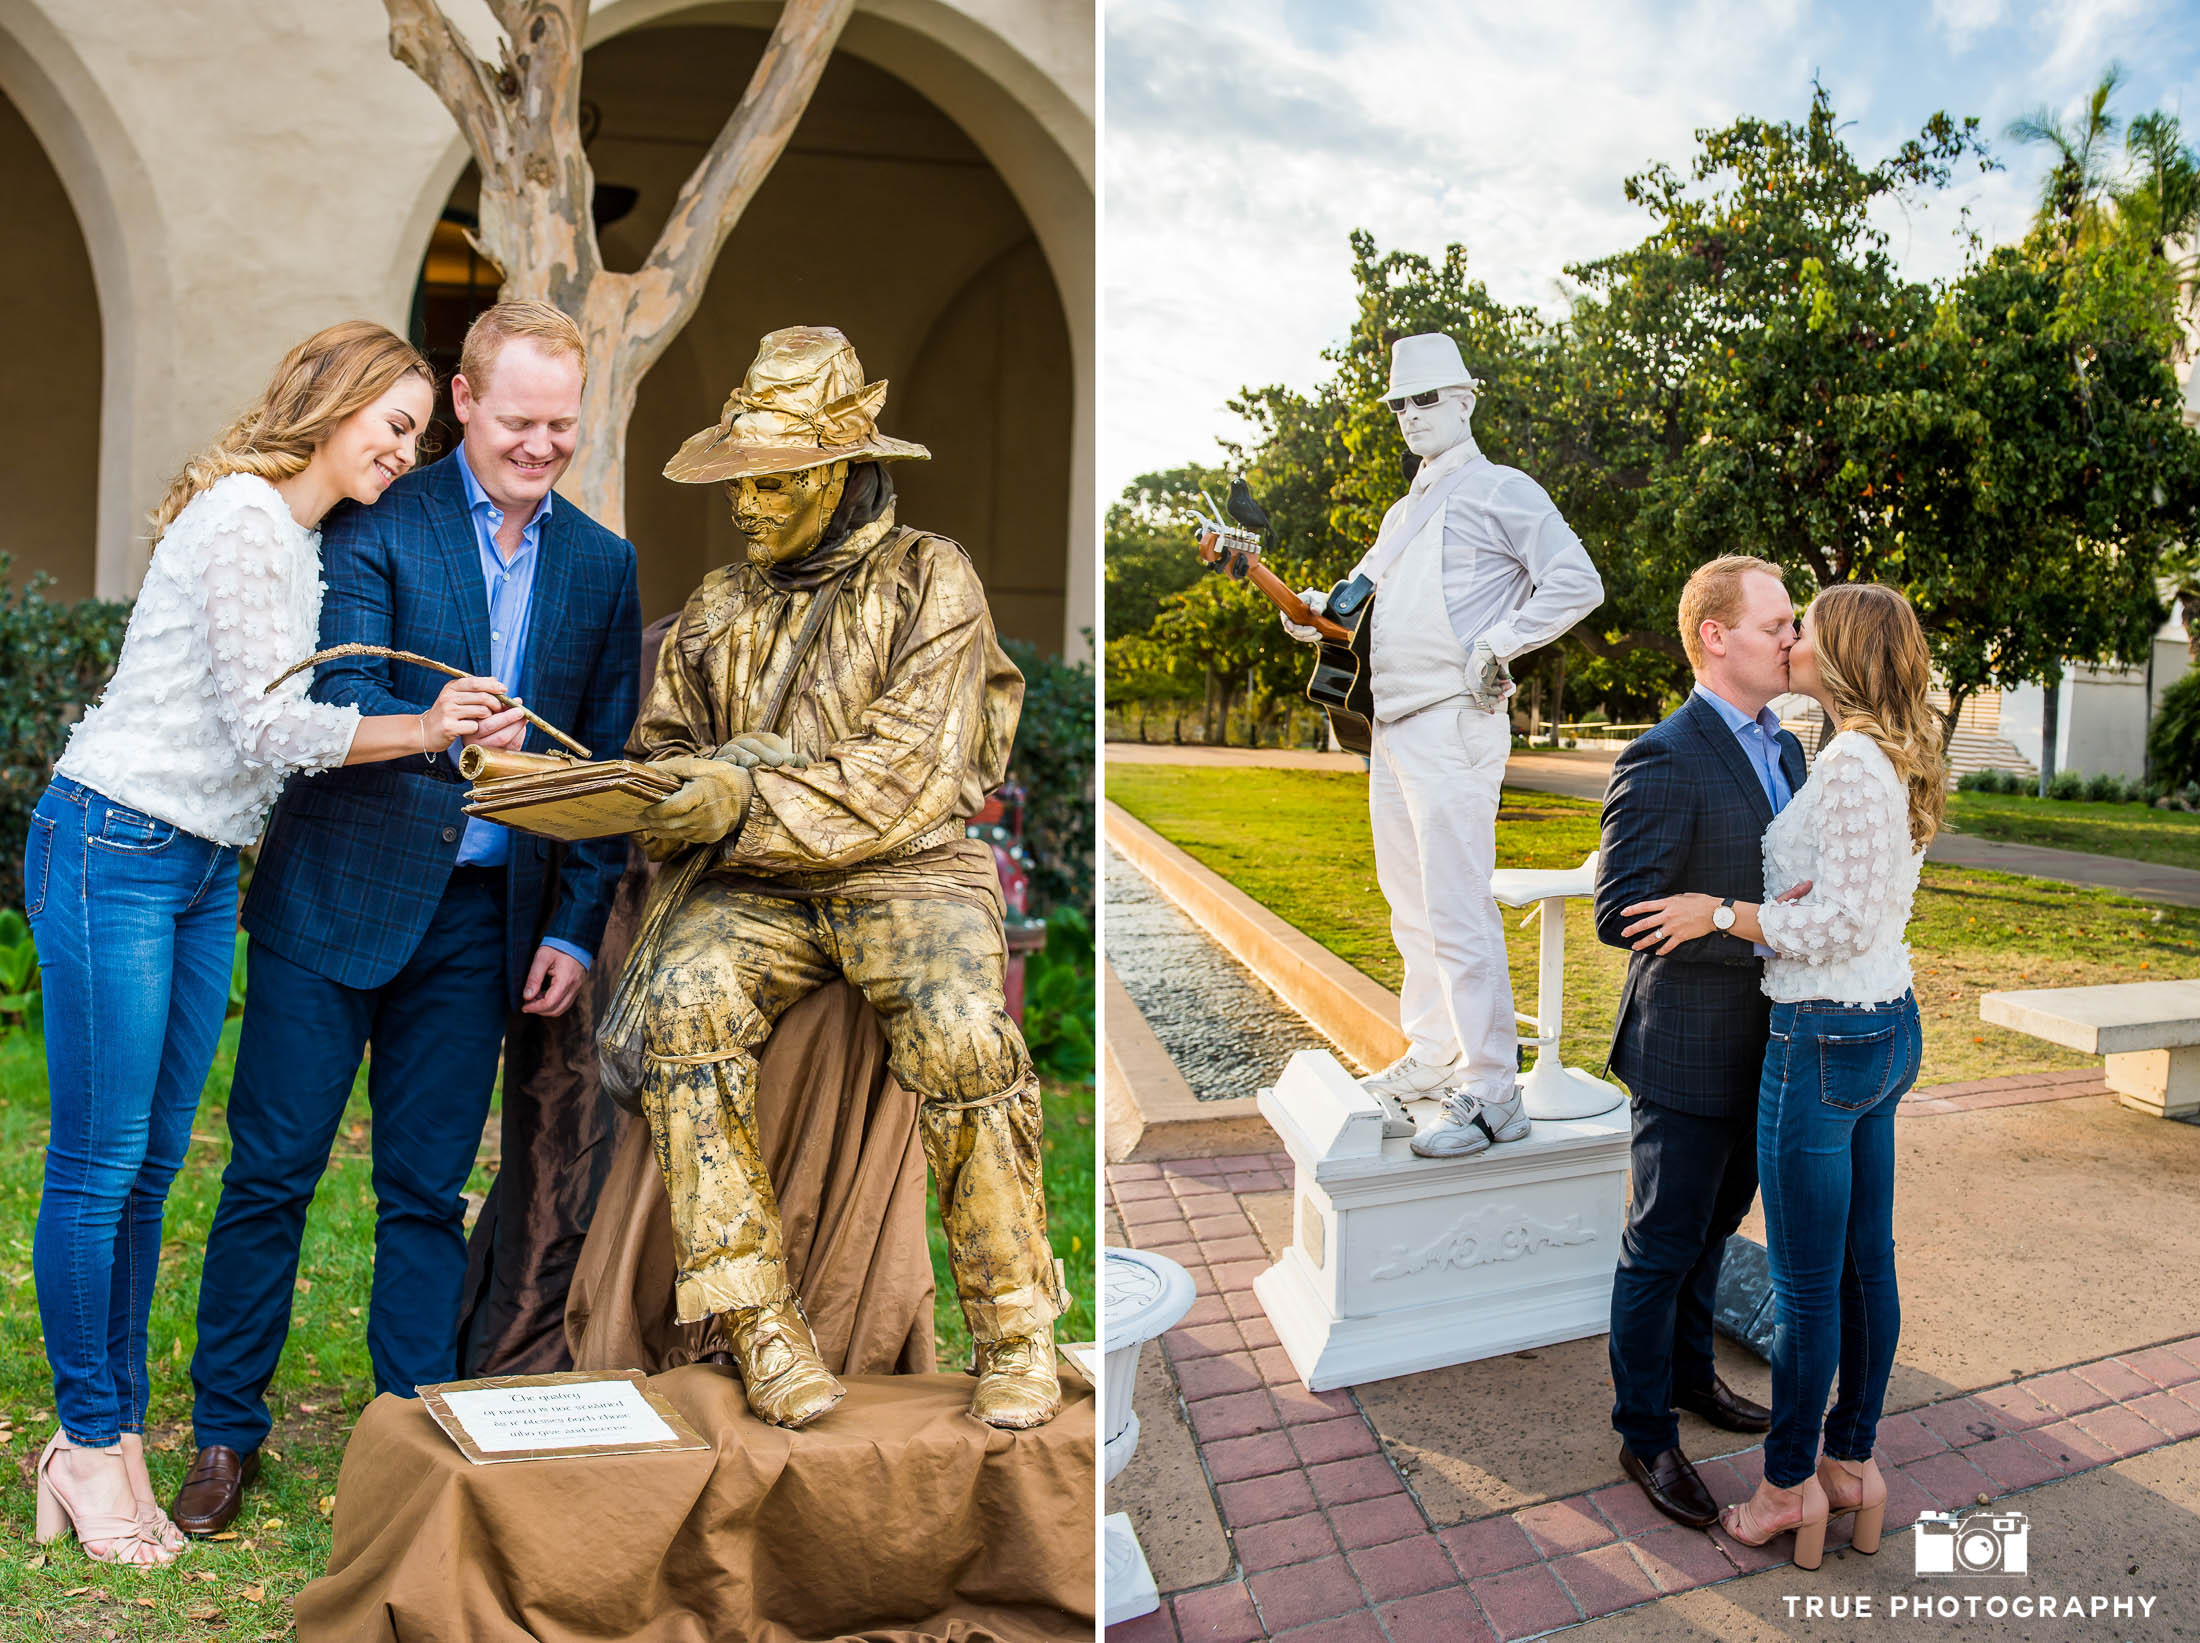 Engaged couple laugh and kiss while interacting with living statue street performers